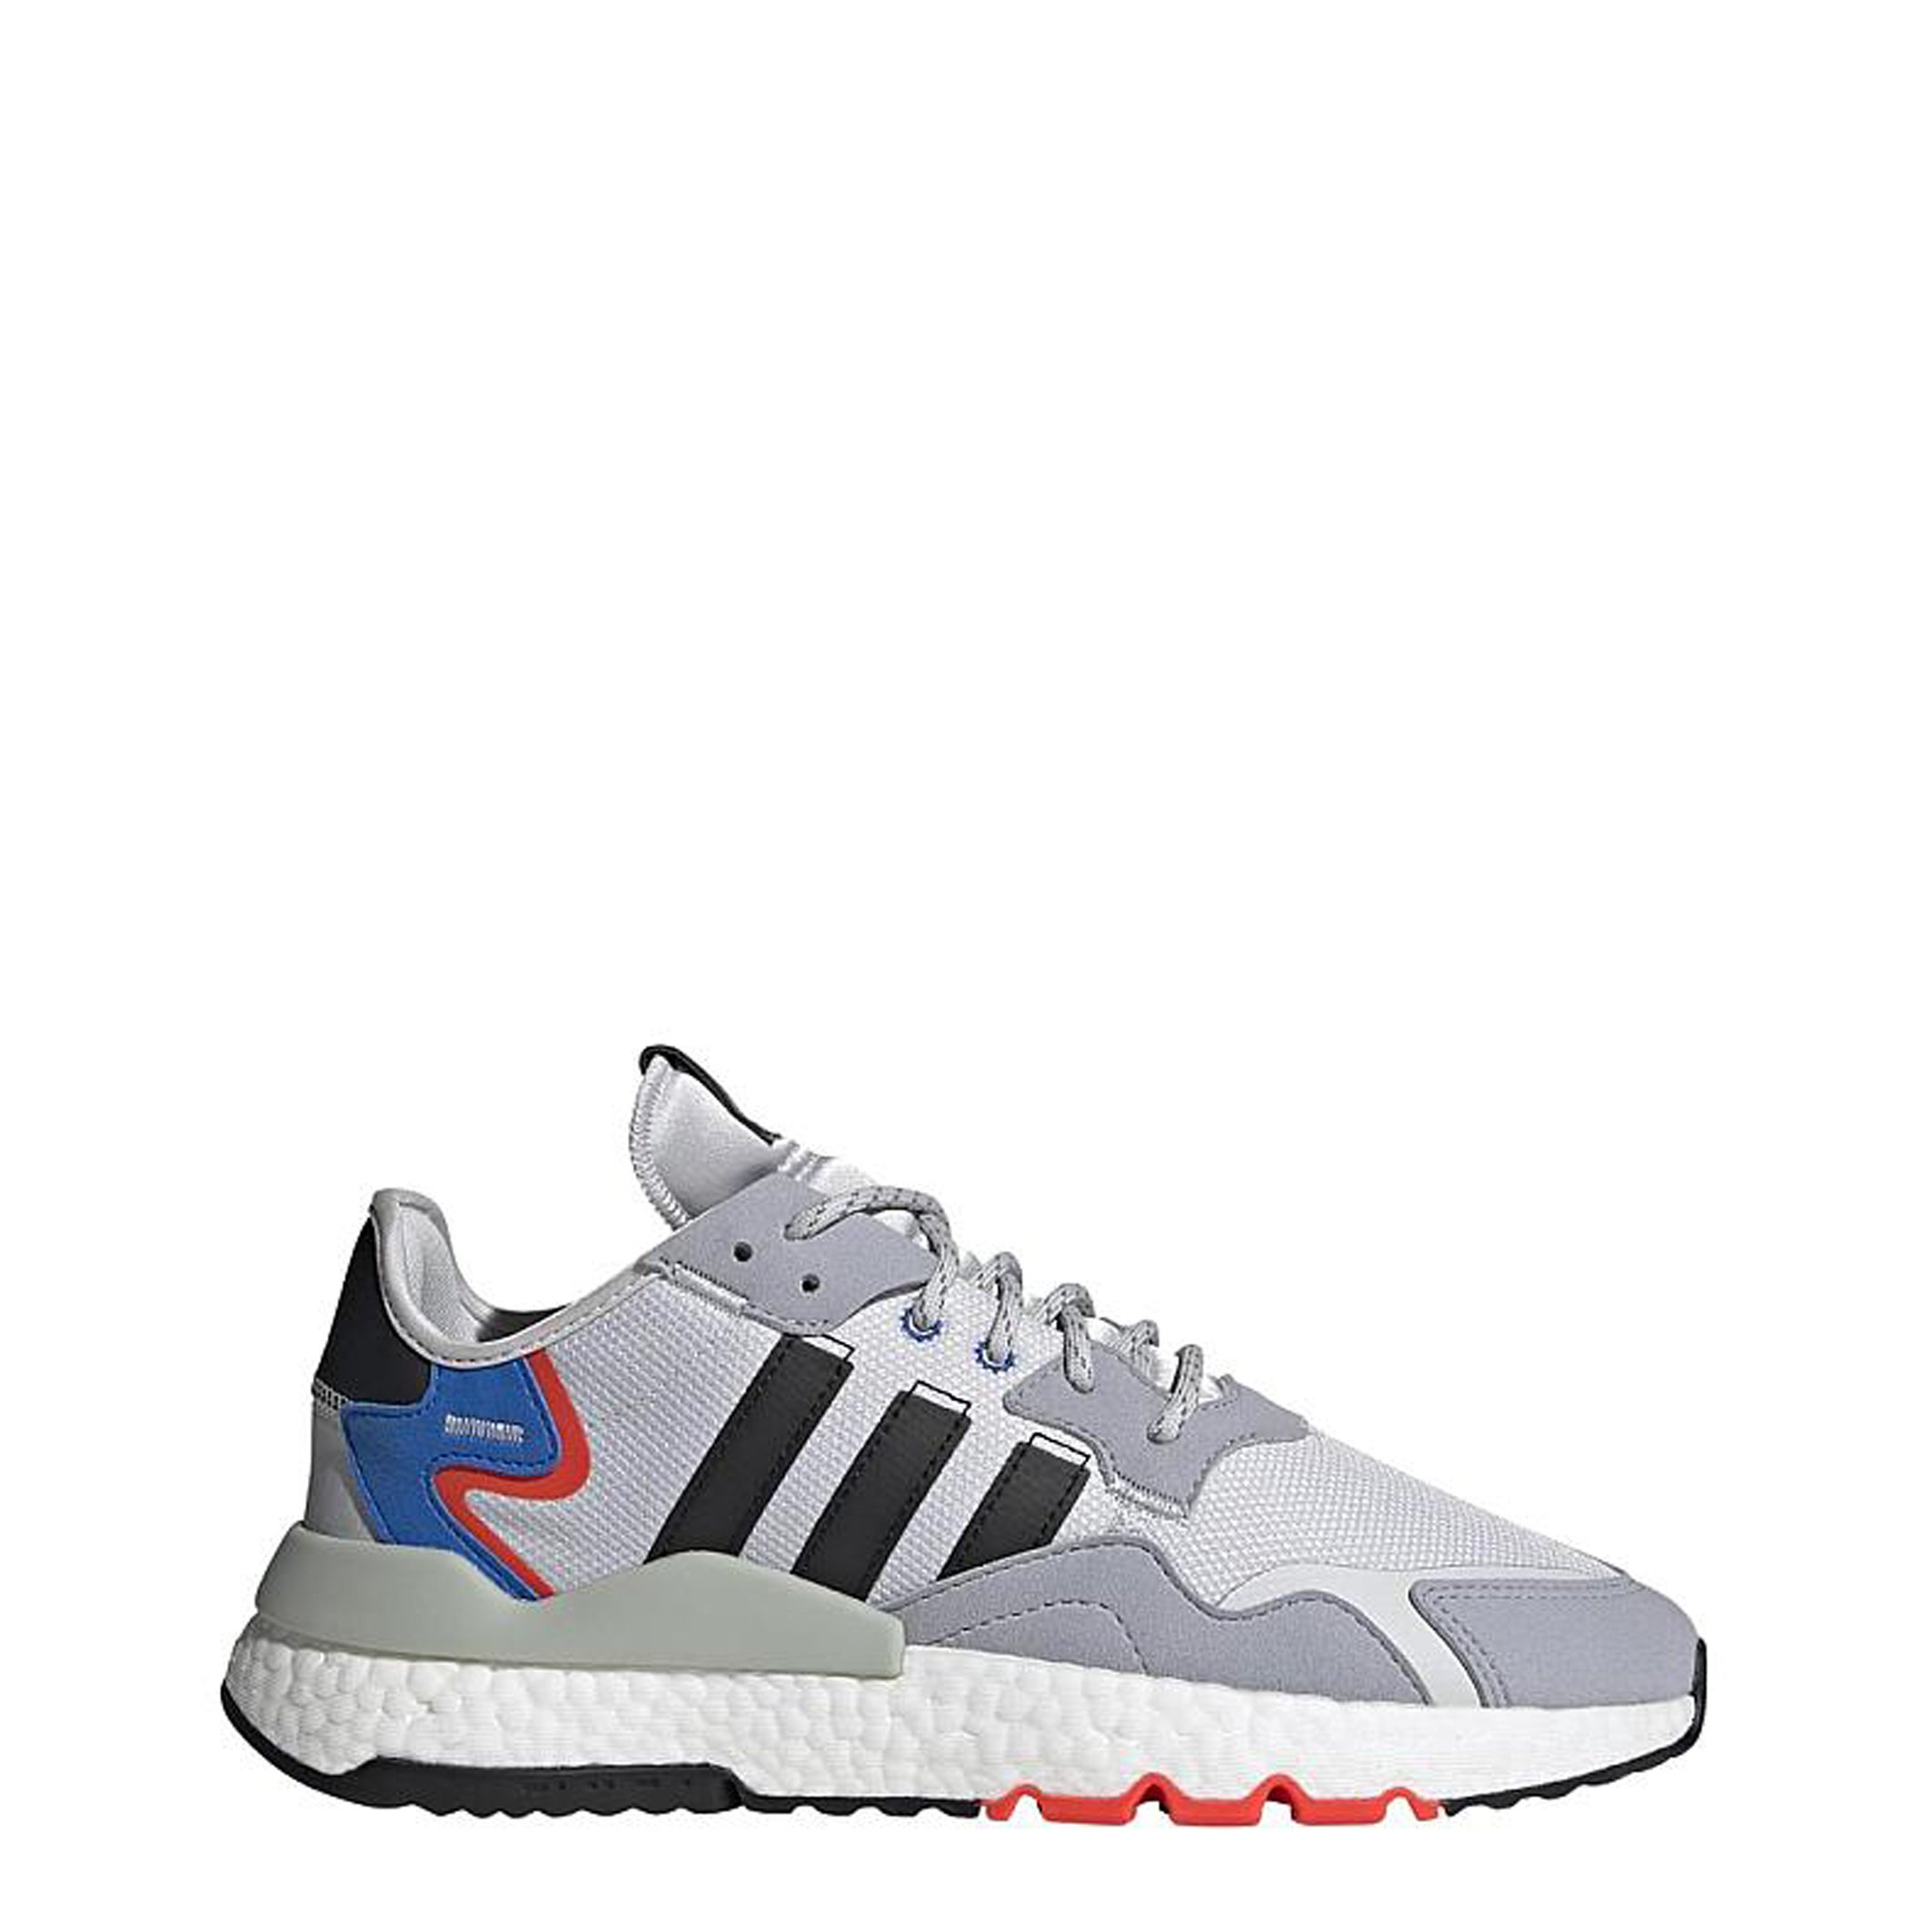 Adidas Men's Nite Jogger Trainers Various Colours EE6254 - grey UK 7.5